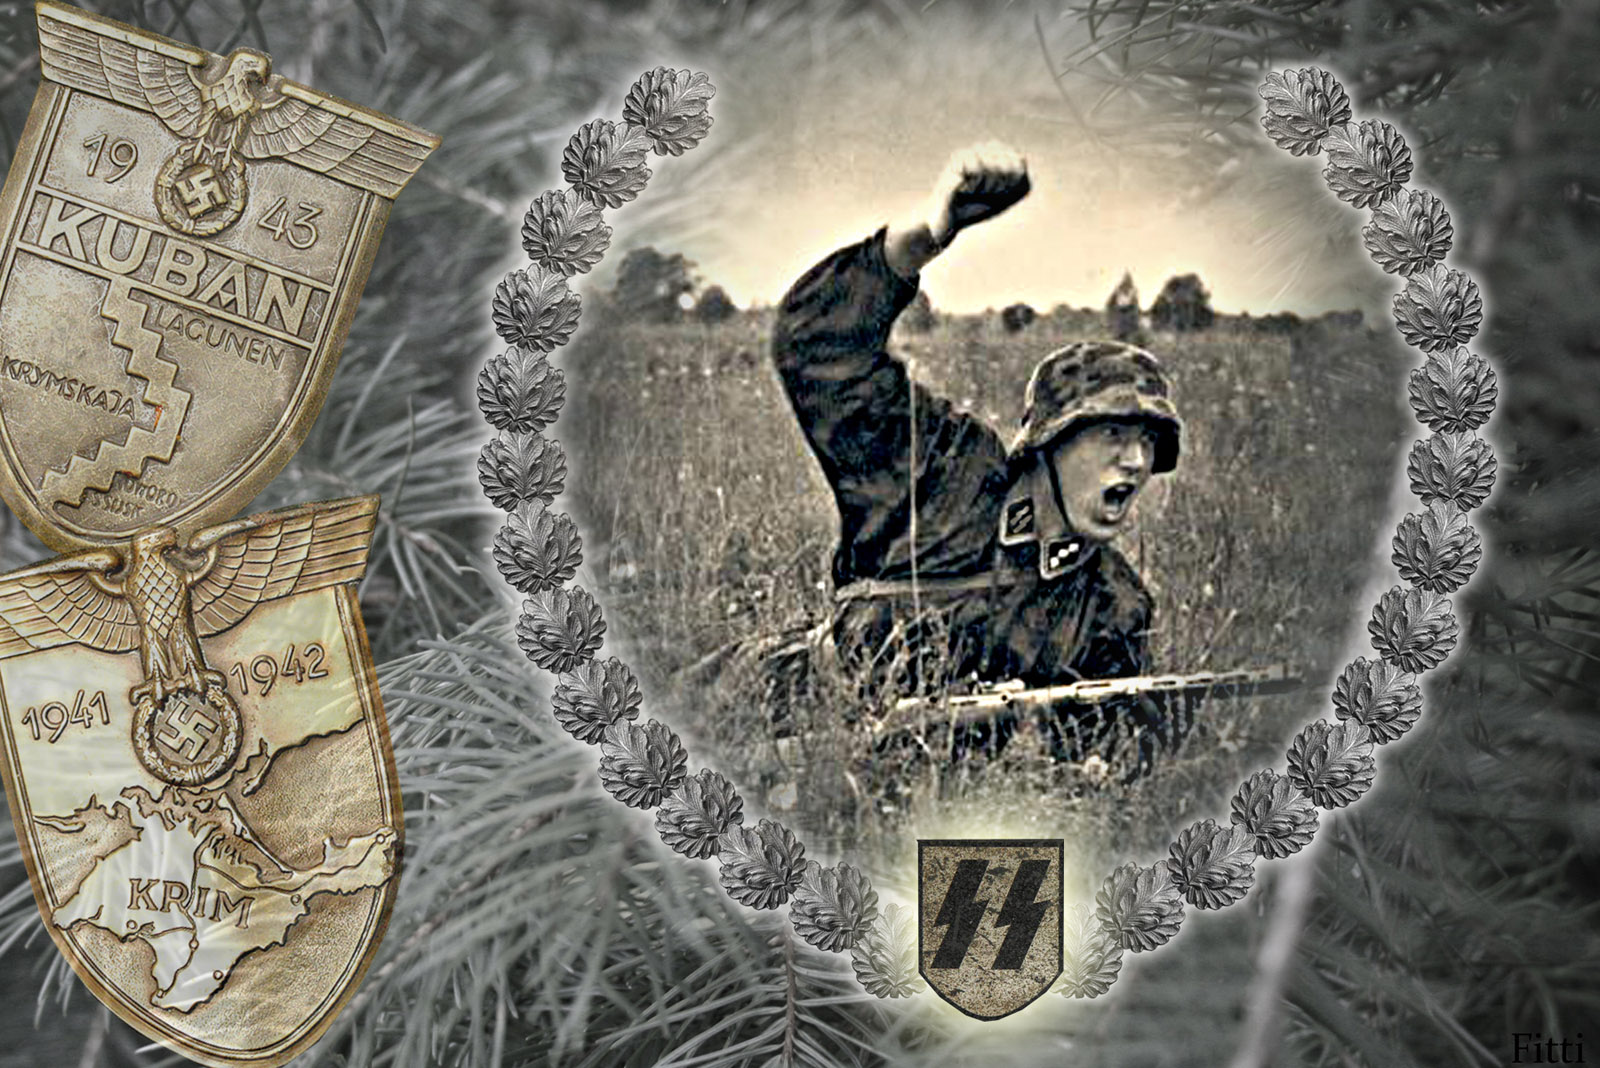 18 nazi hd wallpapers - photo #9